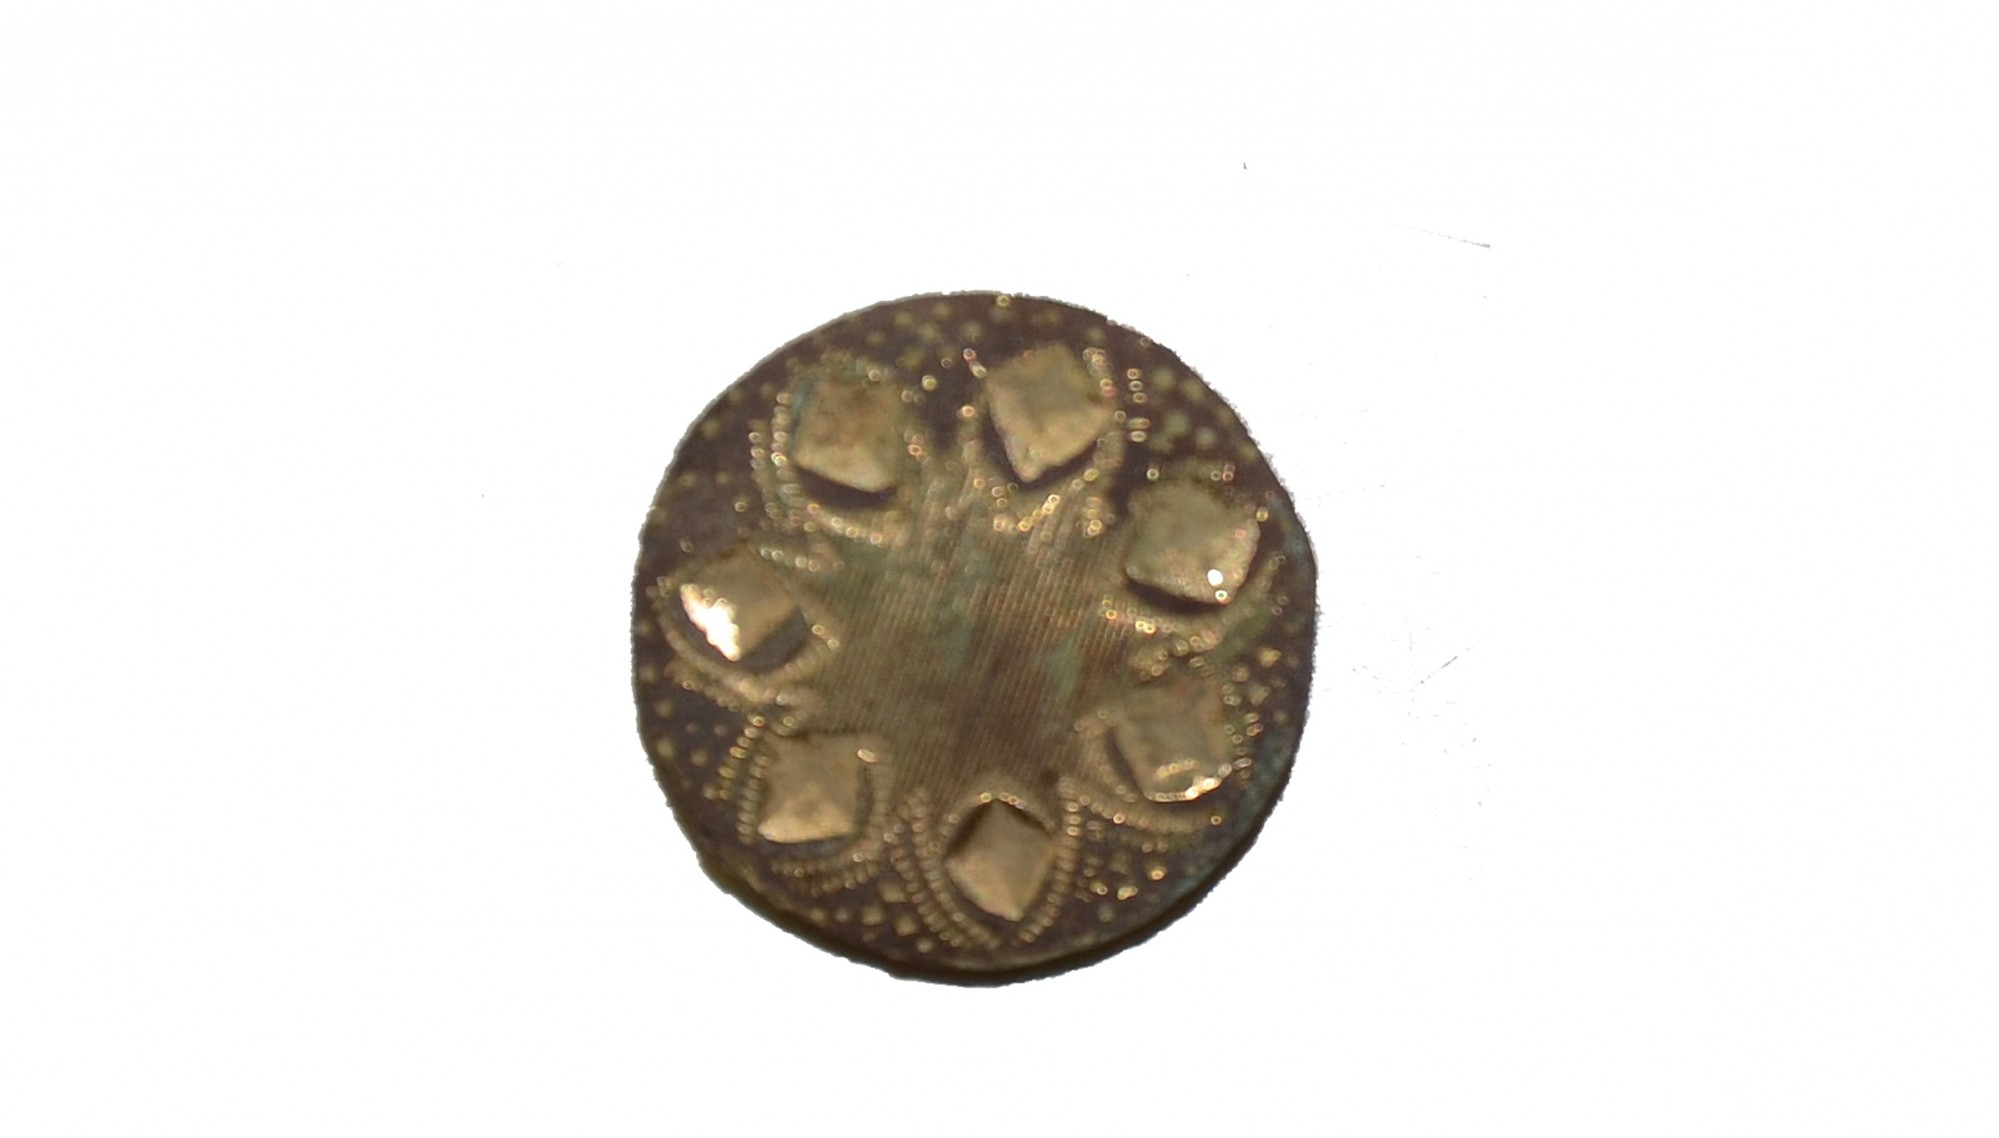 CS/US JACKET BUTTON RECOVERED AT THE ROSE FARM, GETTYSBURG